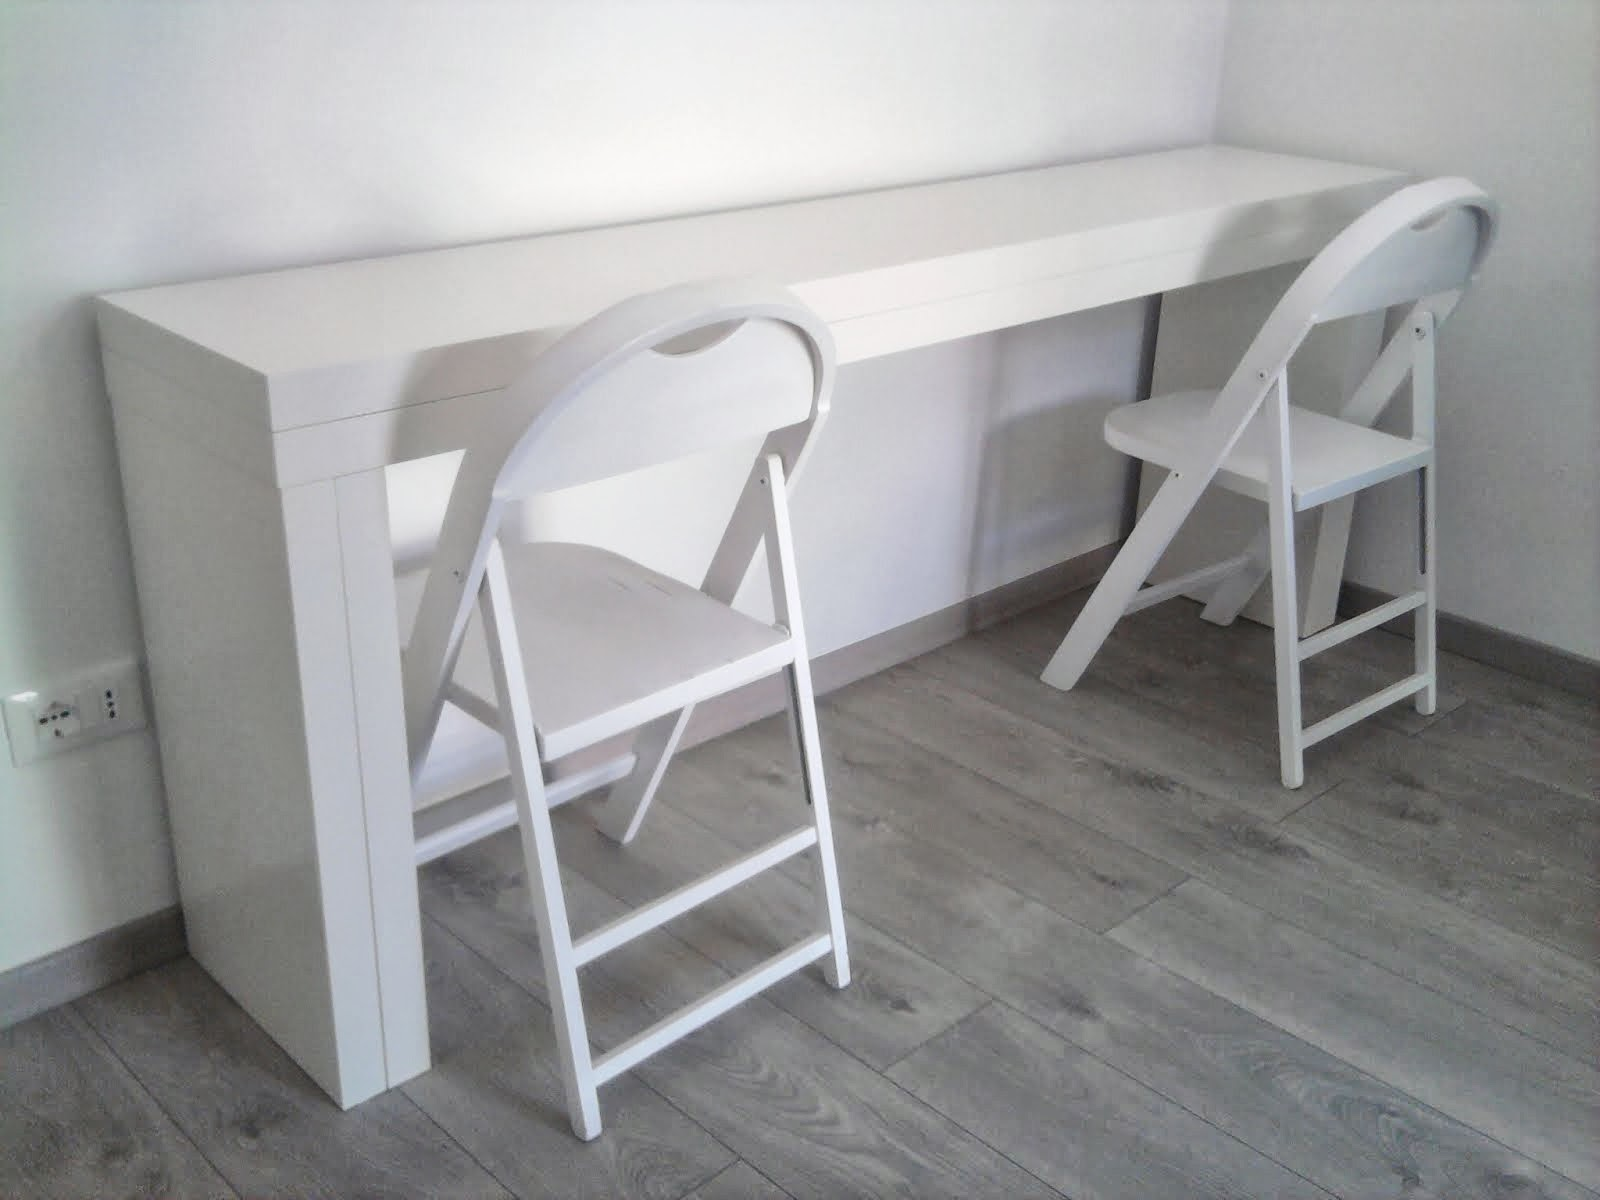 Double it malm console becomes a 10 people table ikea for Console meuble ikea